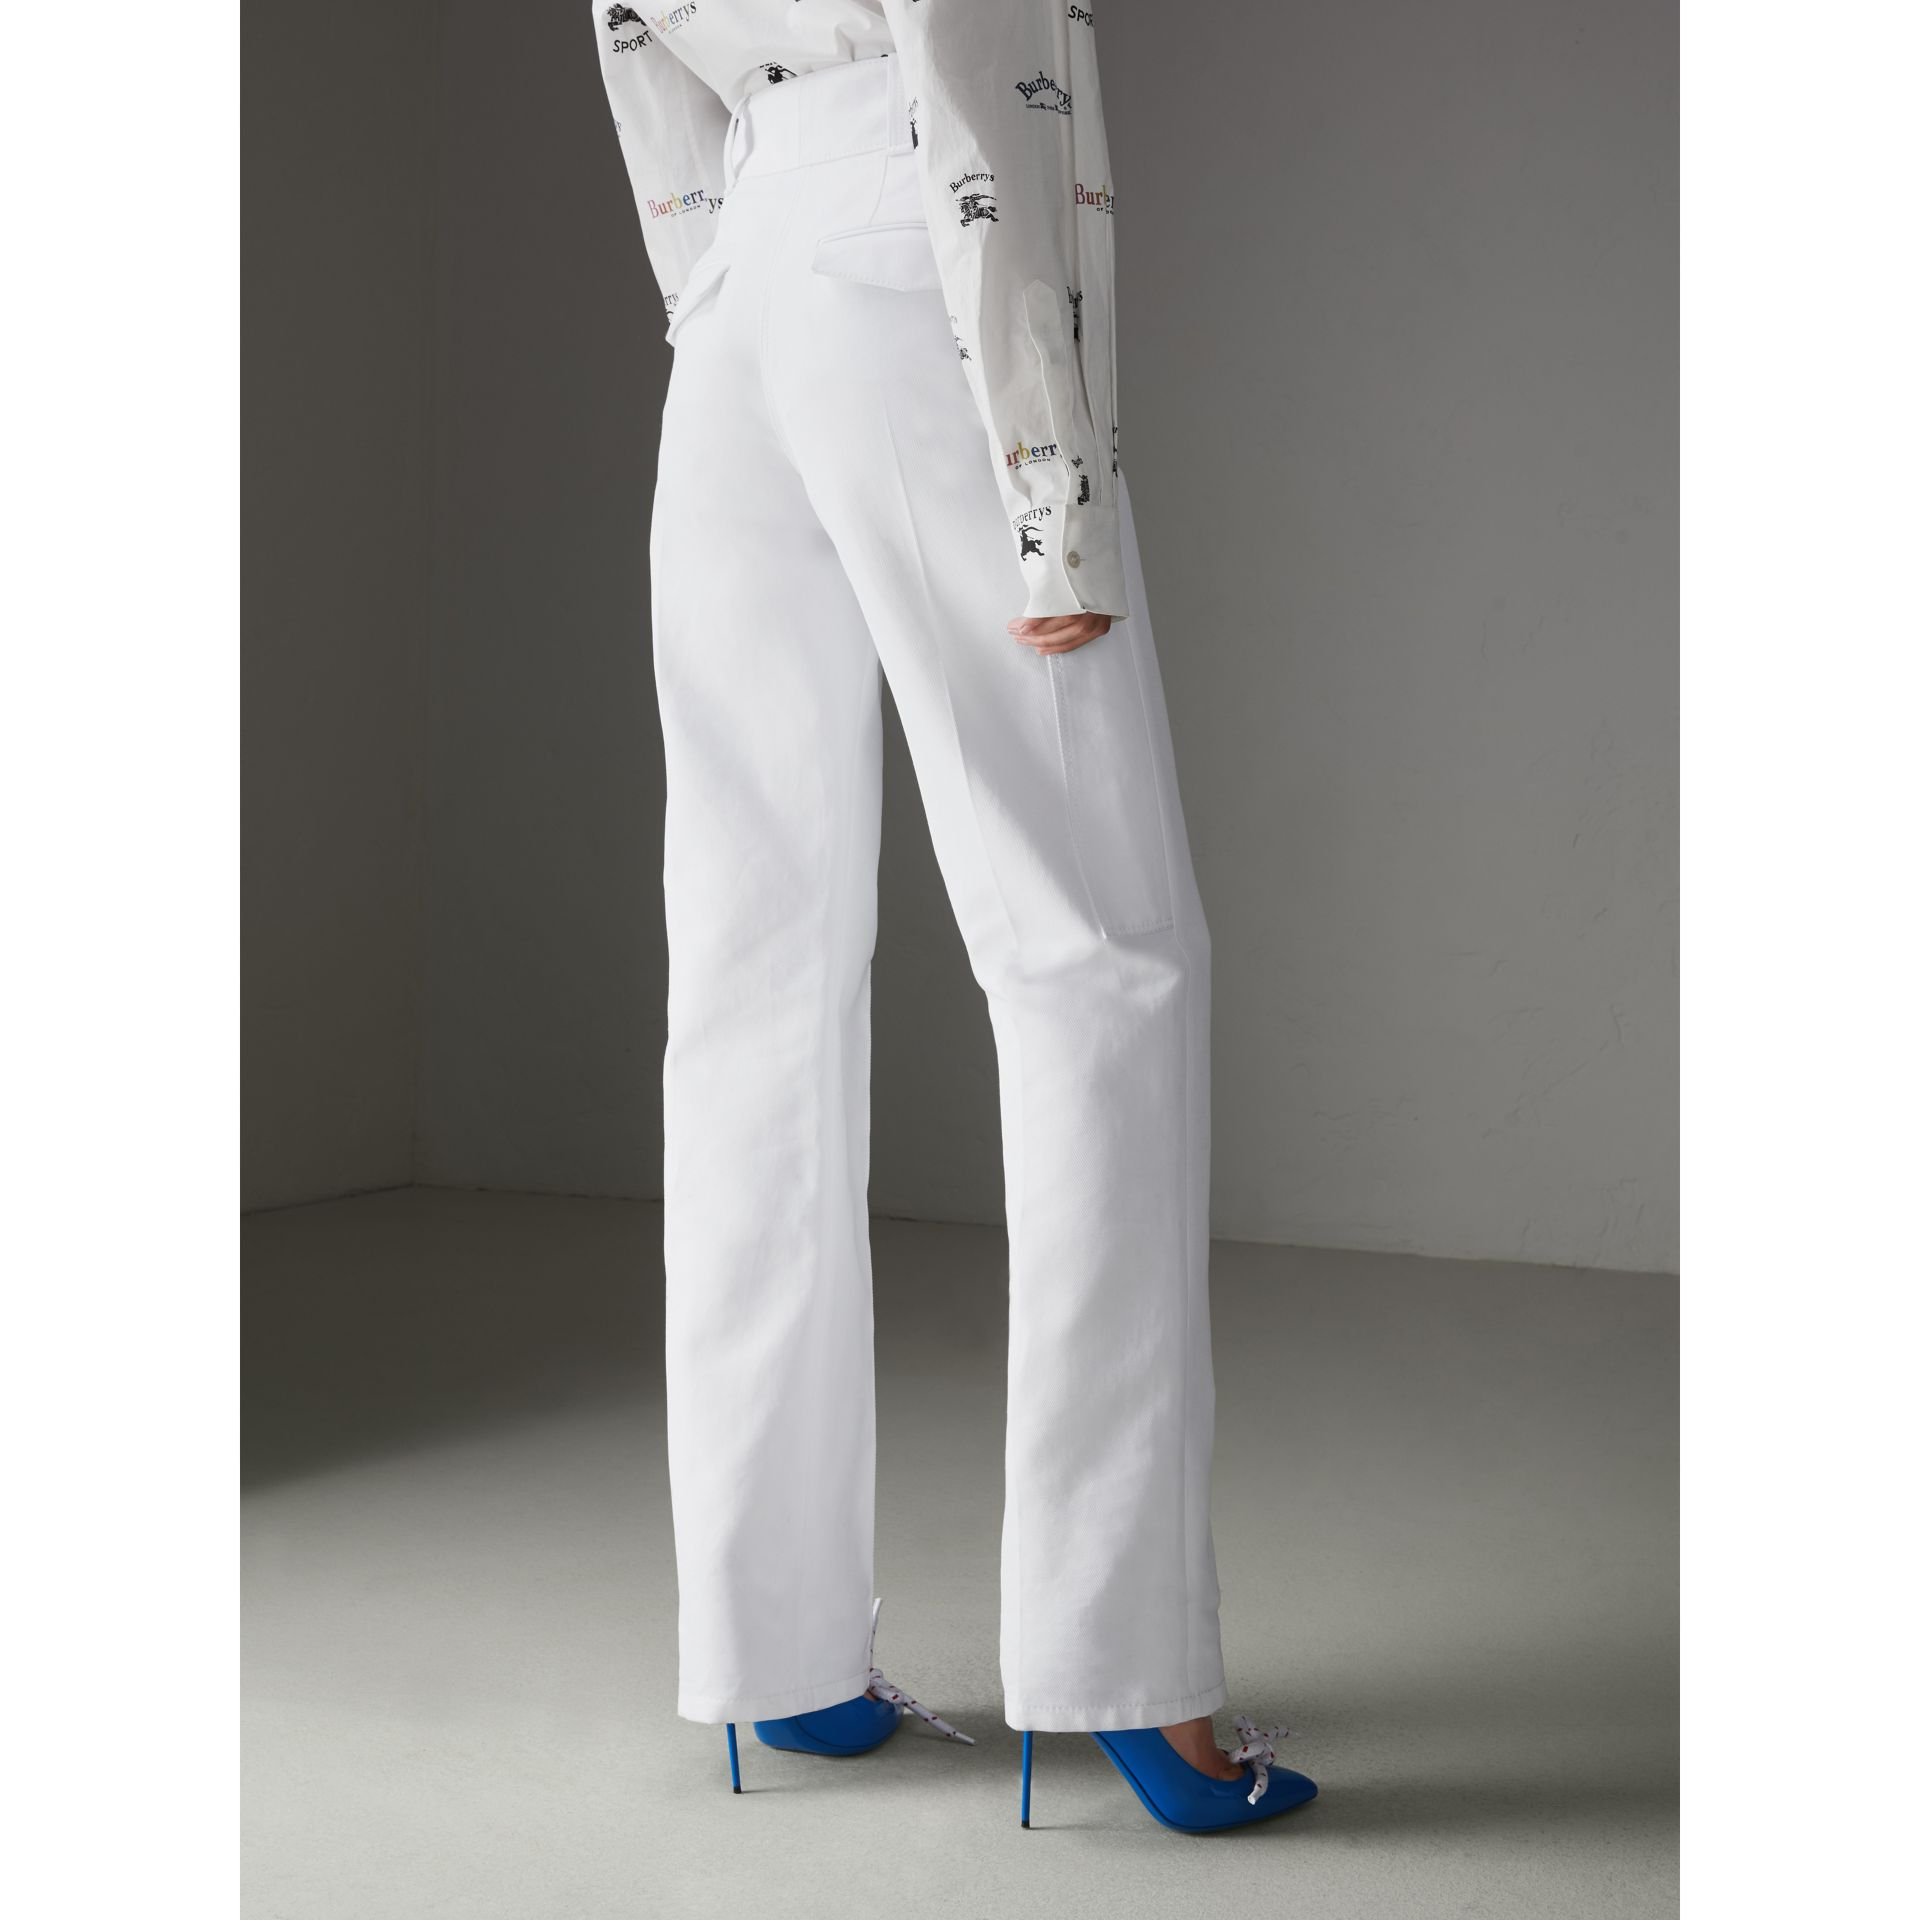 Cotton Drill High-waisted Trousers in White - Women | Burberry - gallery image 2